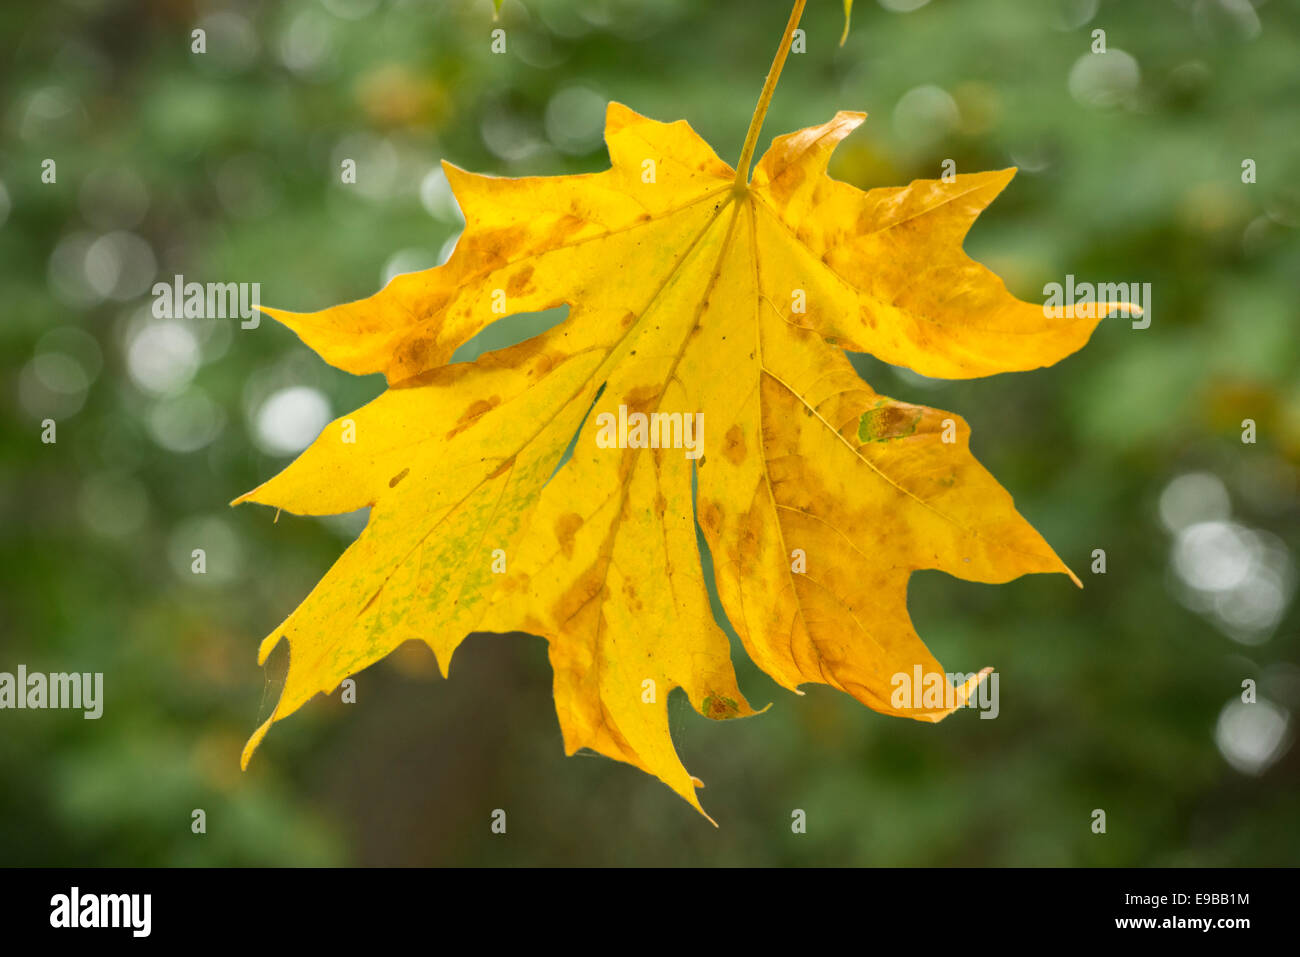 Bigleaf maple tree leaf in autumn; Mount Pisgah Arboretum, Willamette Valley, Oregon. - Stock Image